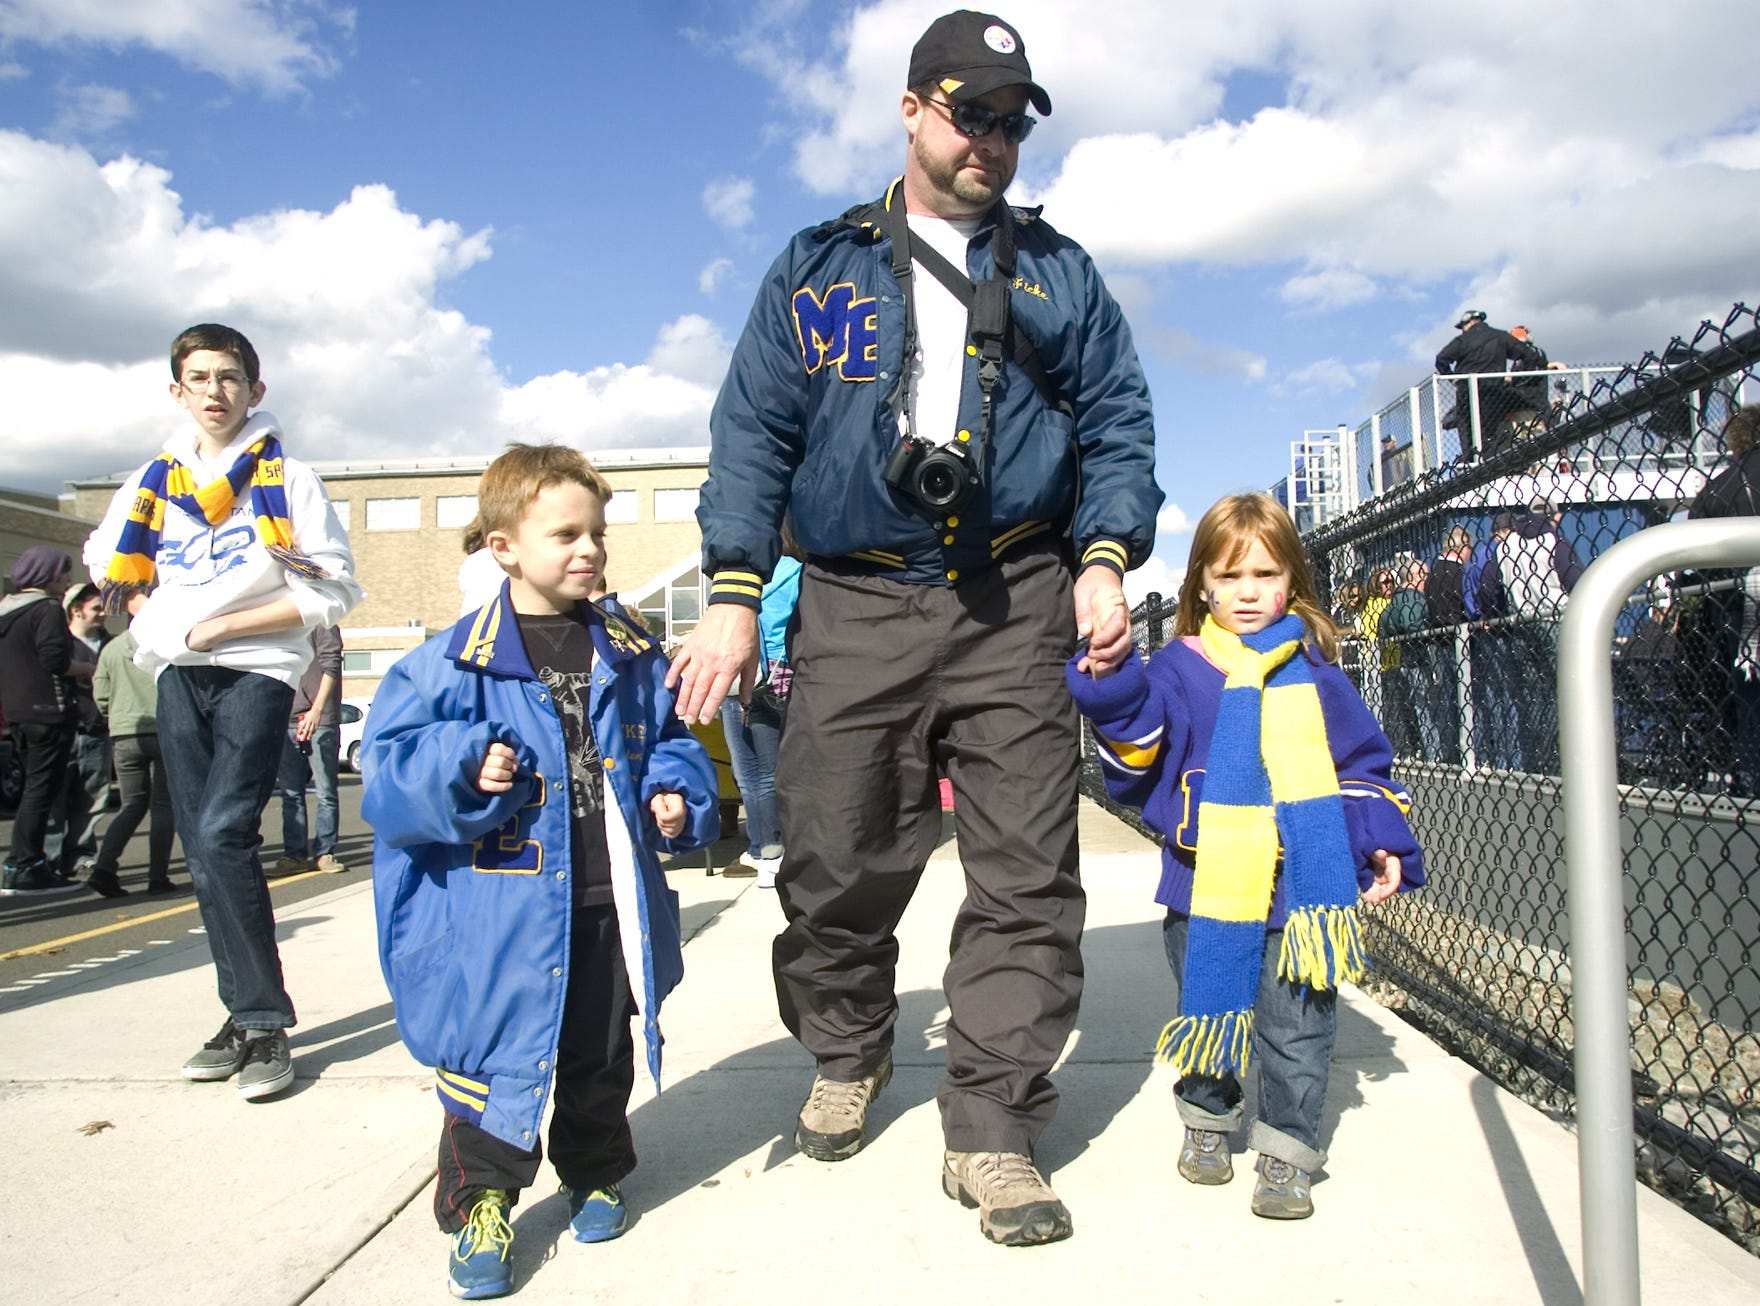 Maine-Endwell High School Class of 1985 alumnus Tom Ficke guides his children, 5-year-old Logan Ficke, left, and 4-year-old Ruby Ficke, to their seats prior to the start of the 2012 homecoming game against Union-Endicott, held at Spartan Stadium, in Endwell.